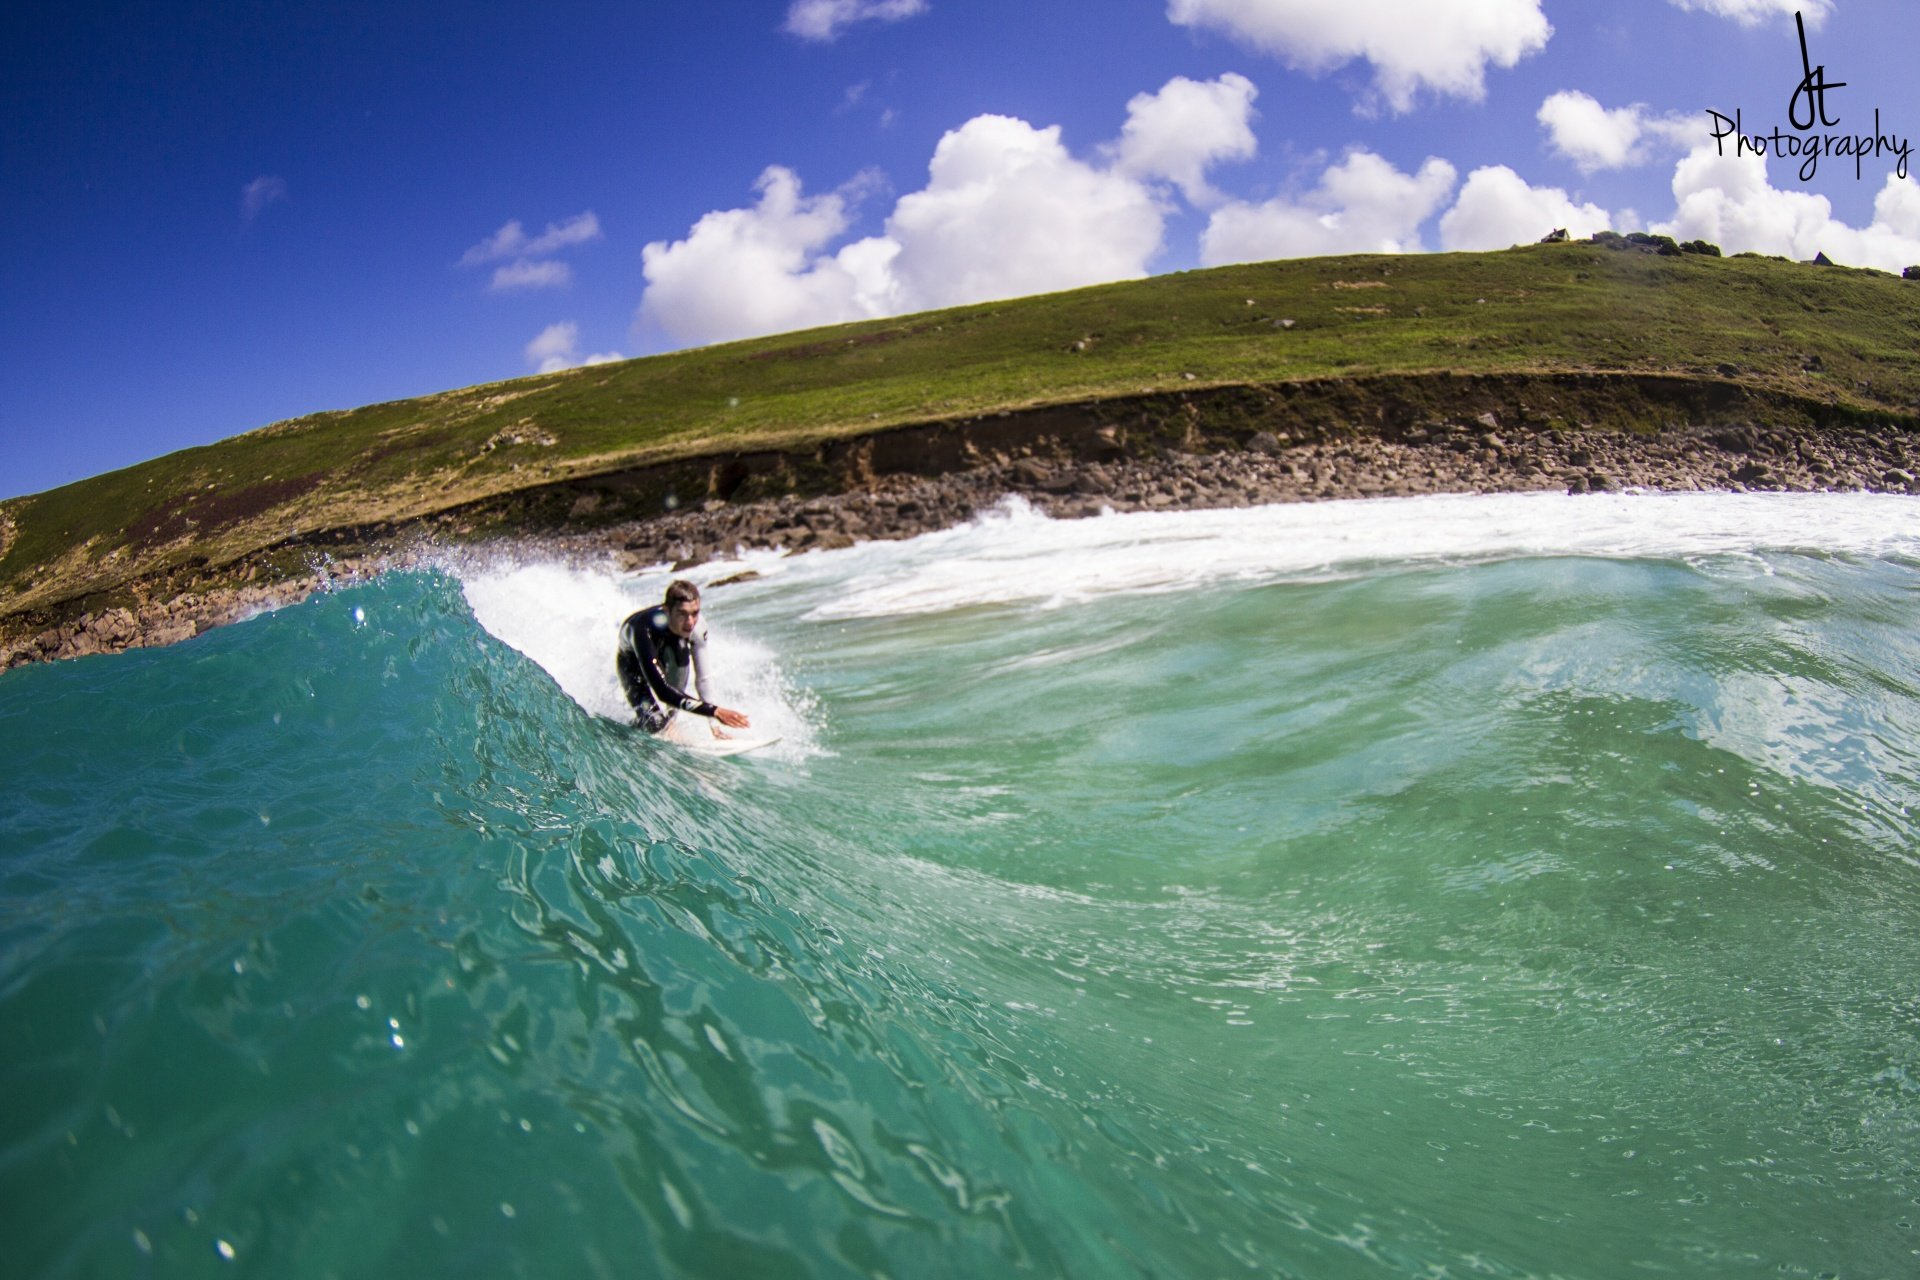 Joe Tinsley-Hewson's photo of Sennen